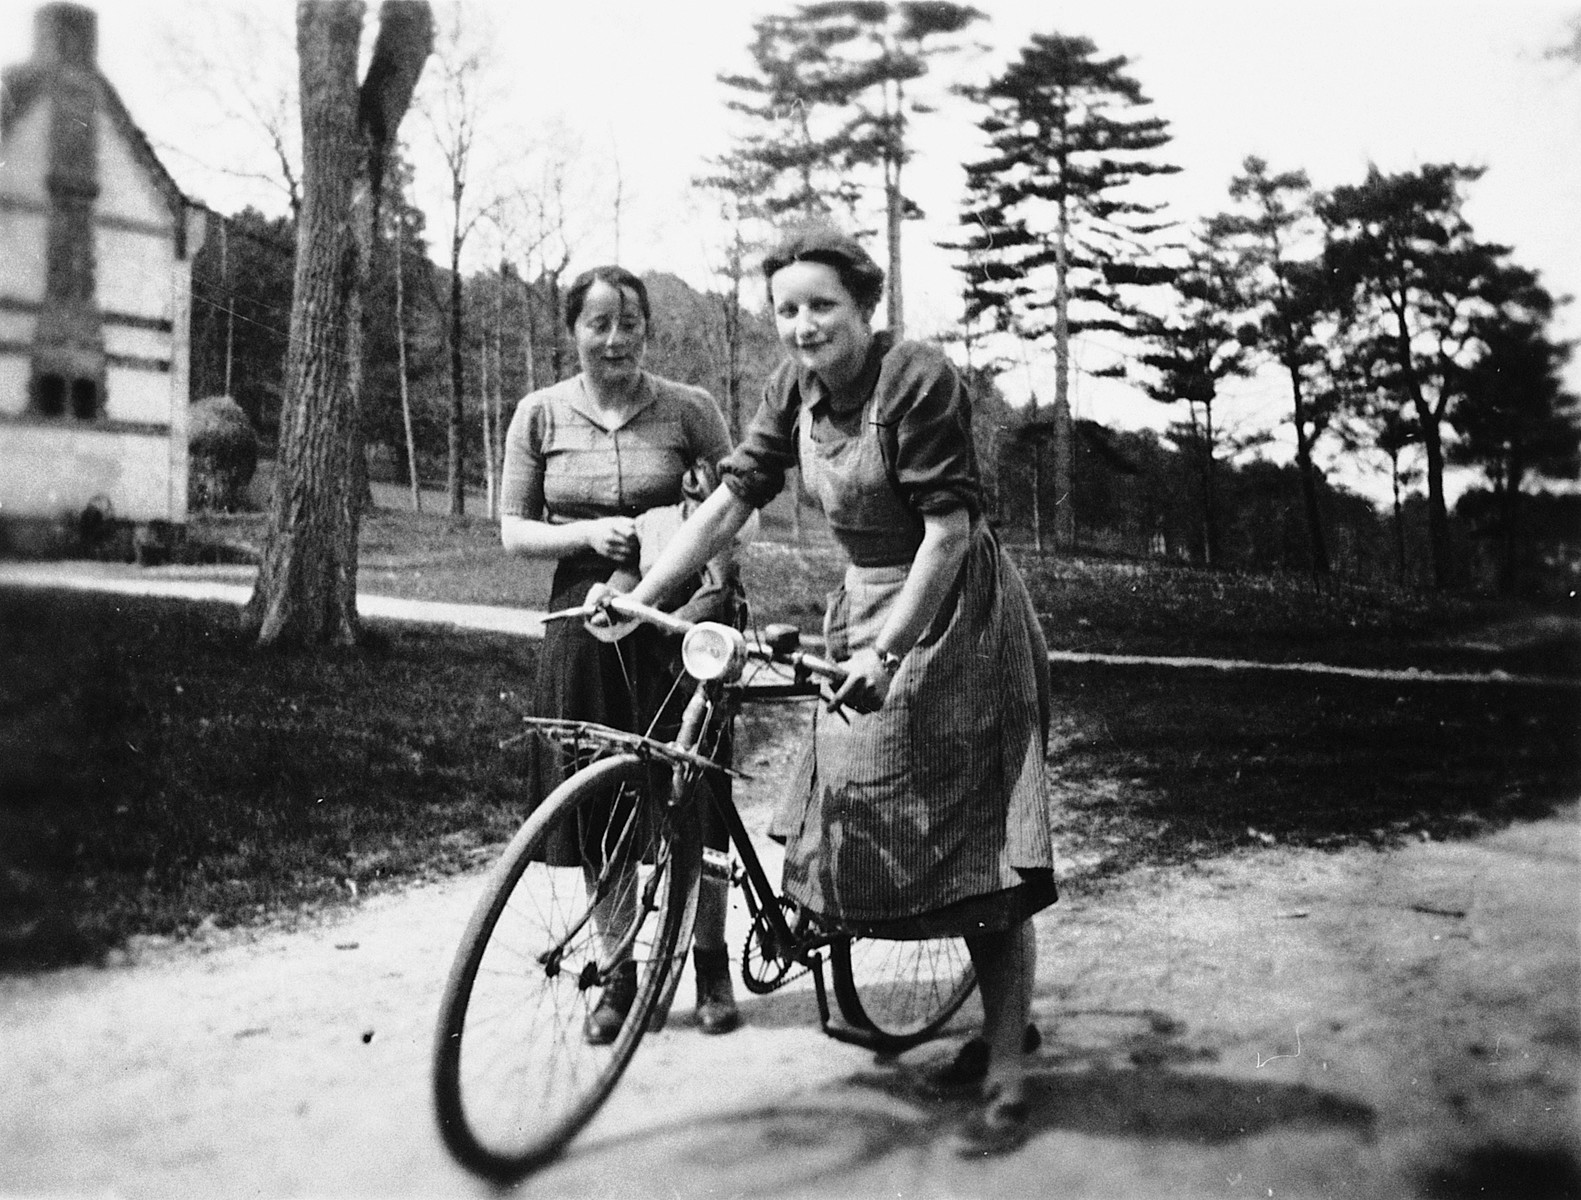 Magrit Taennler rides a bicycle near Chateau de la Hille while Ms. Tobler looks on.